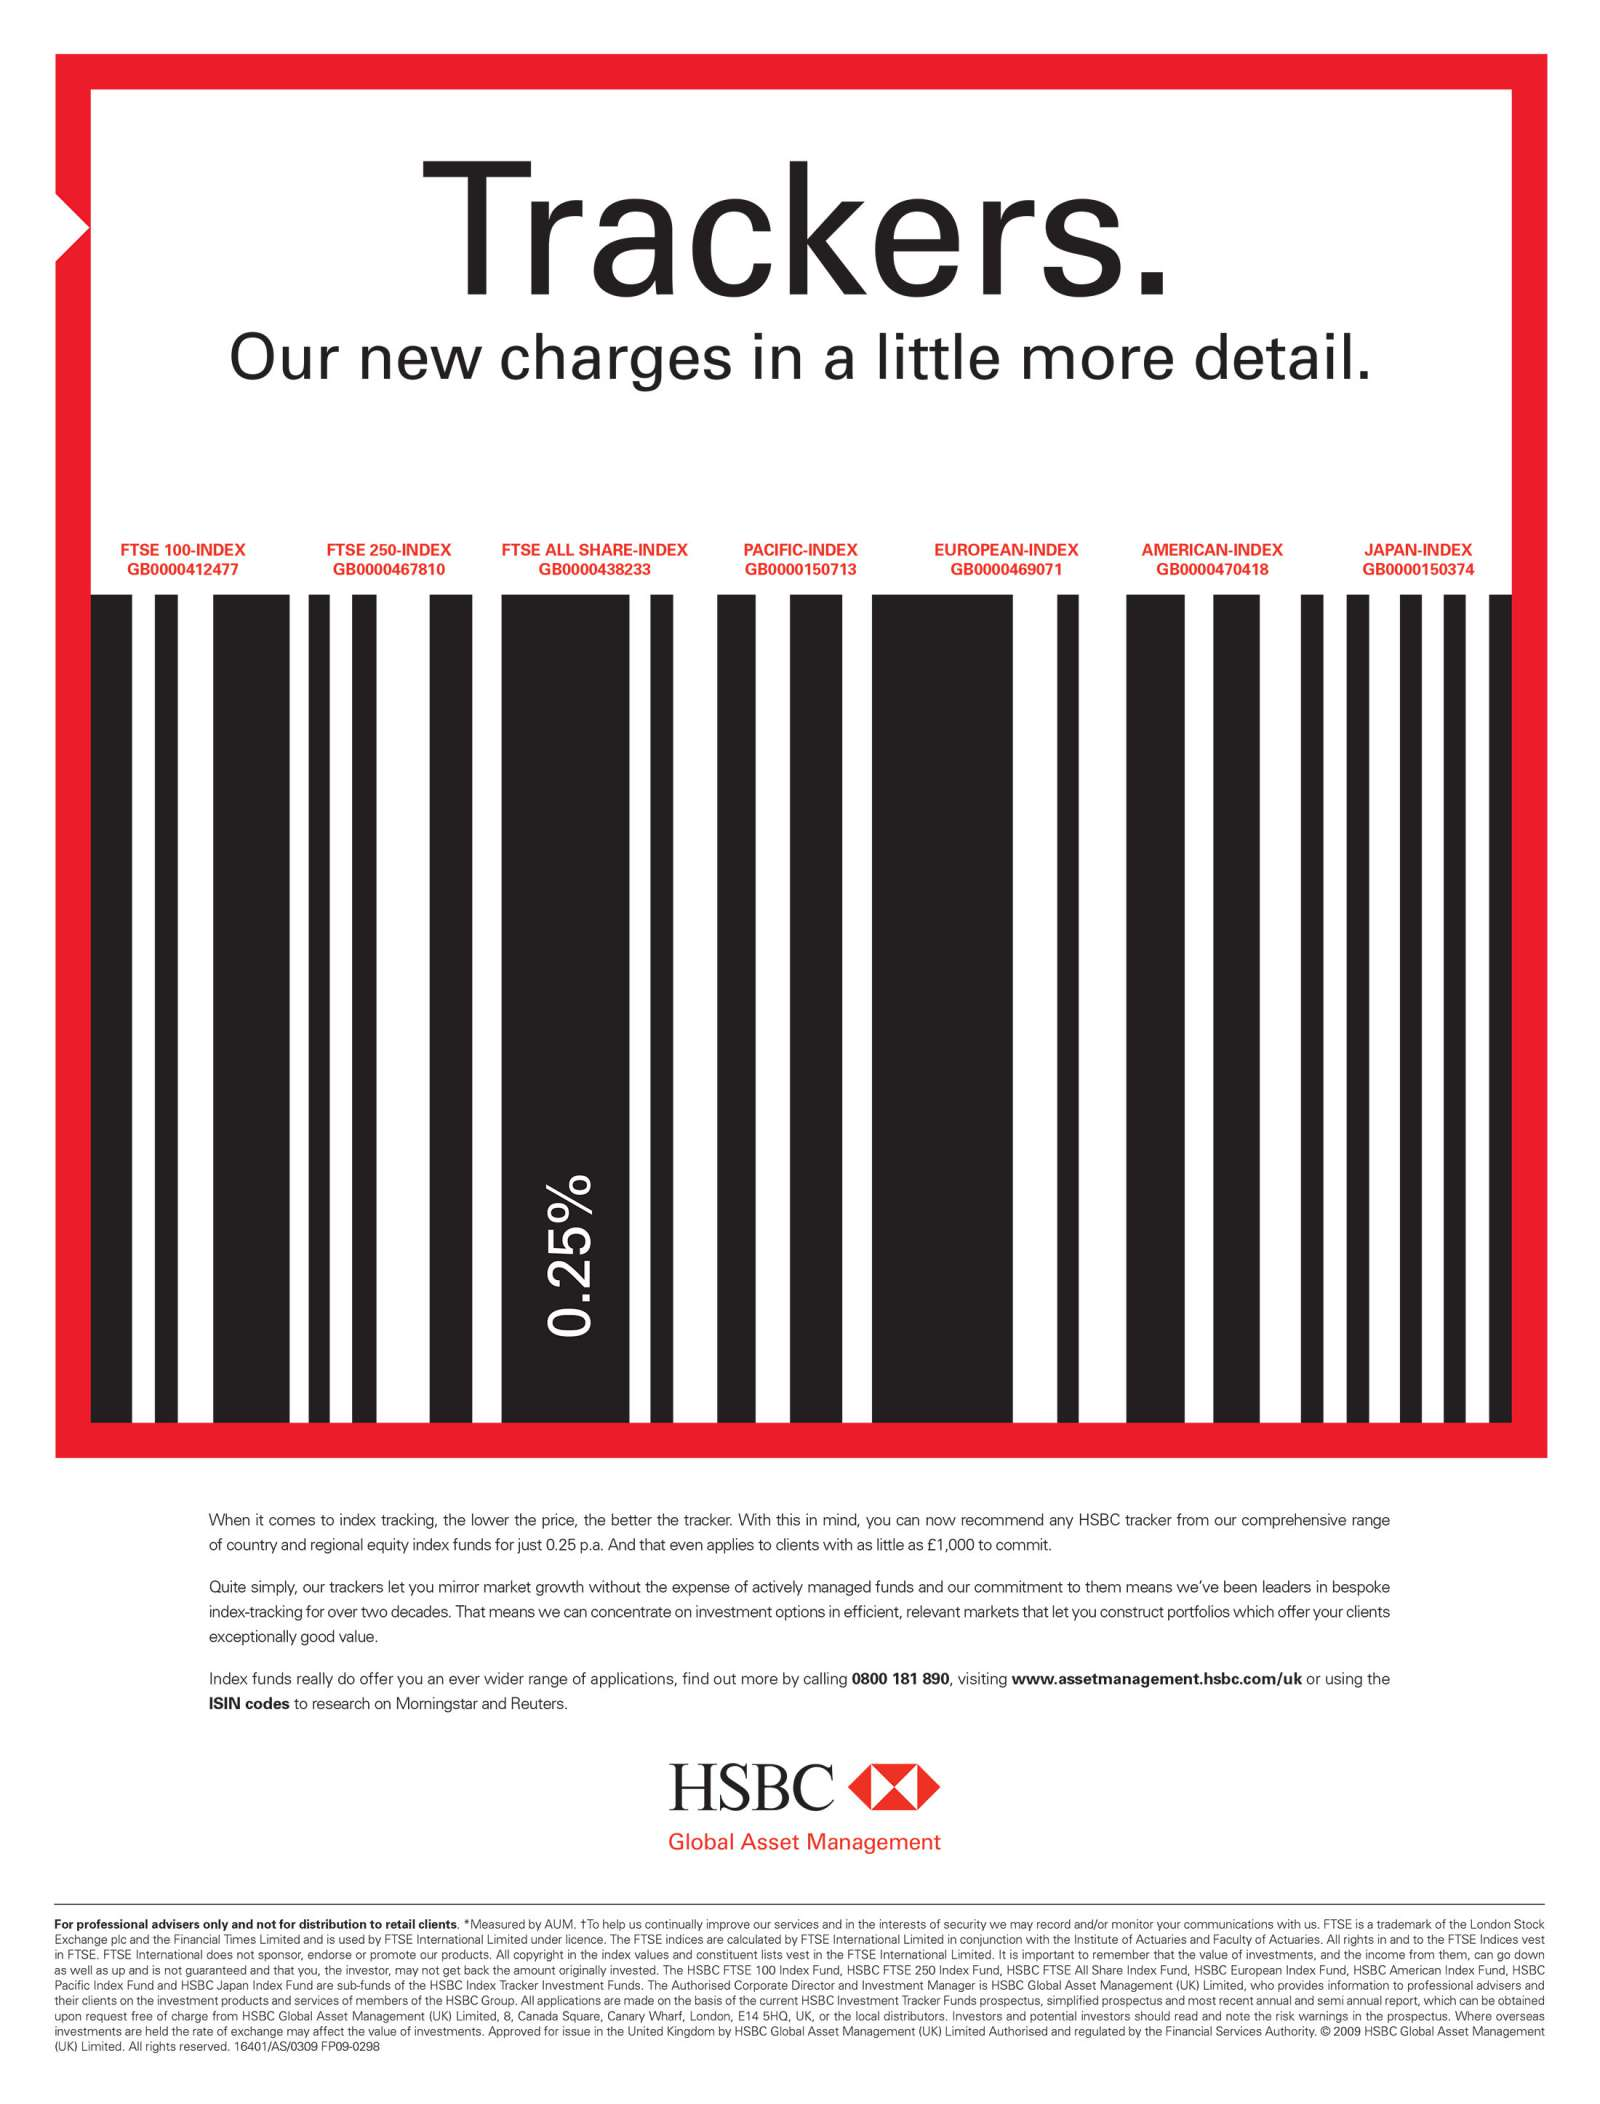 HSBC Global Asset Management | Spooner Creative